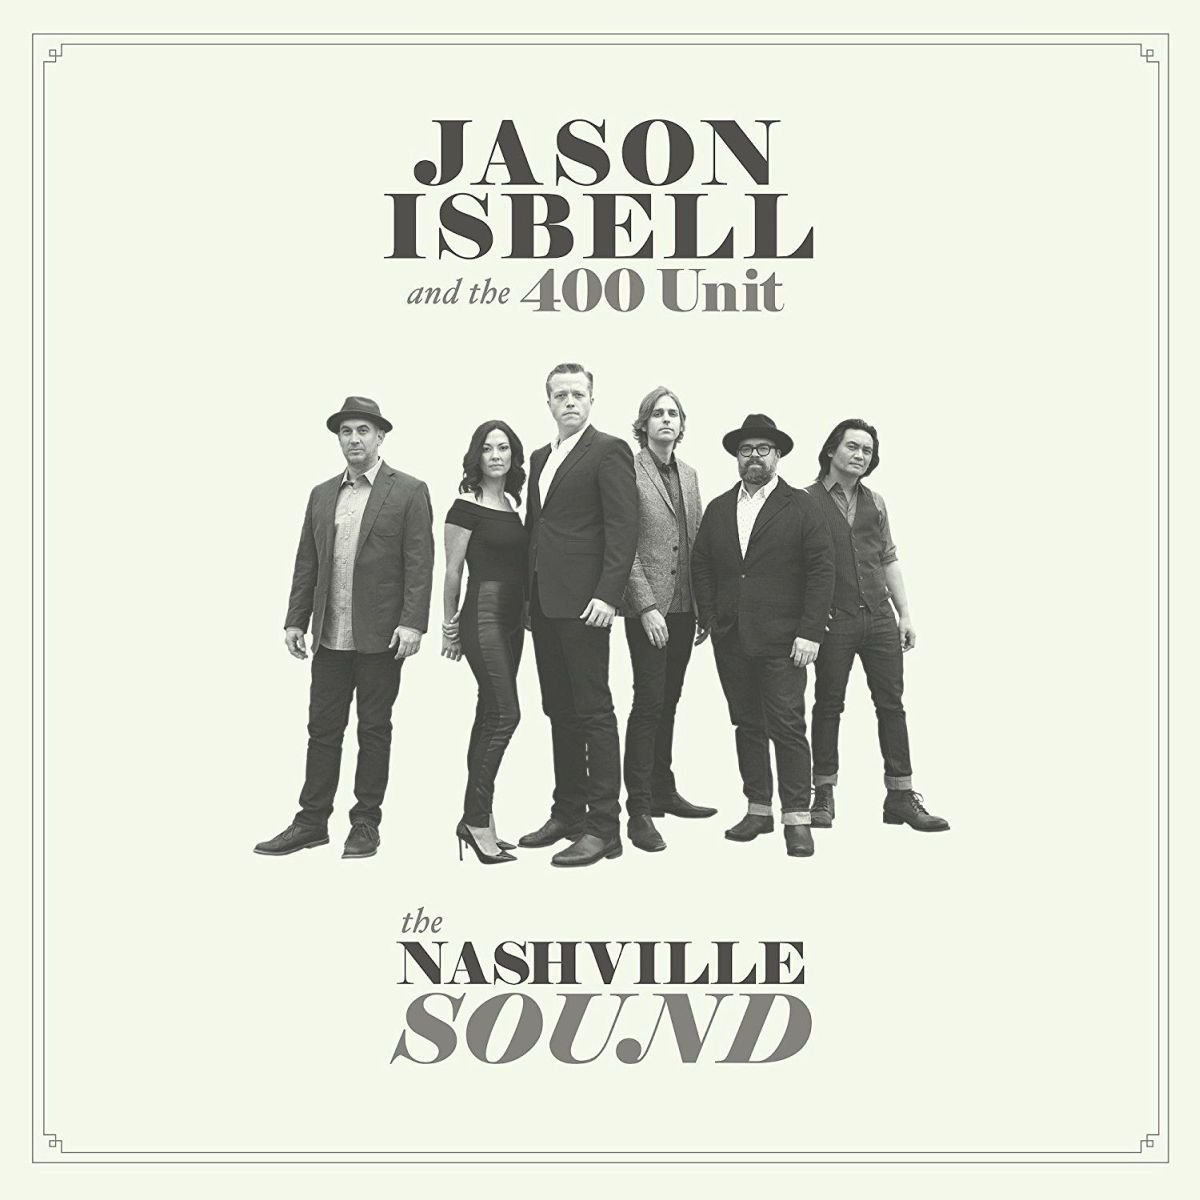 Jason Isbell & The 400 Unit – The Nashville Sound (Southeastern / Thirty Tigers)